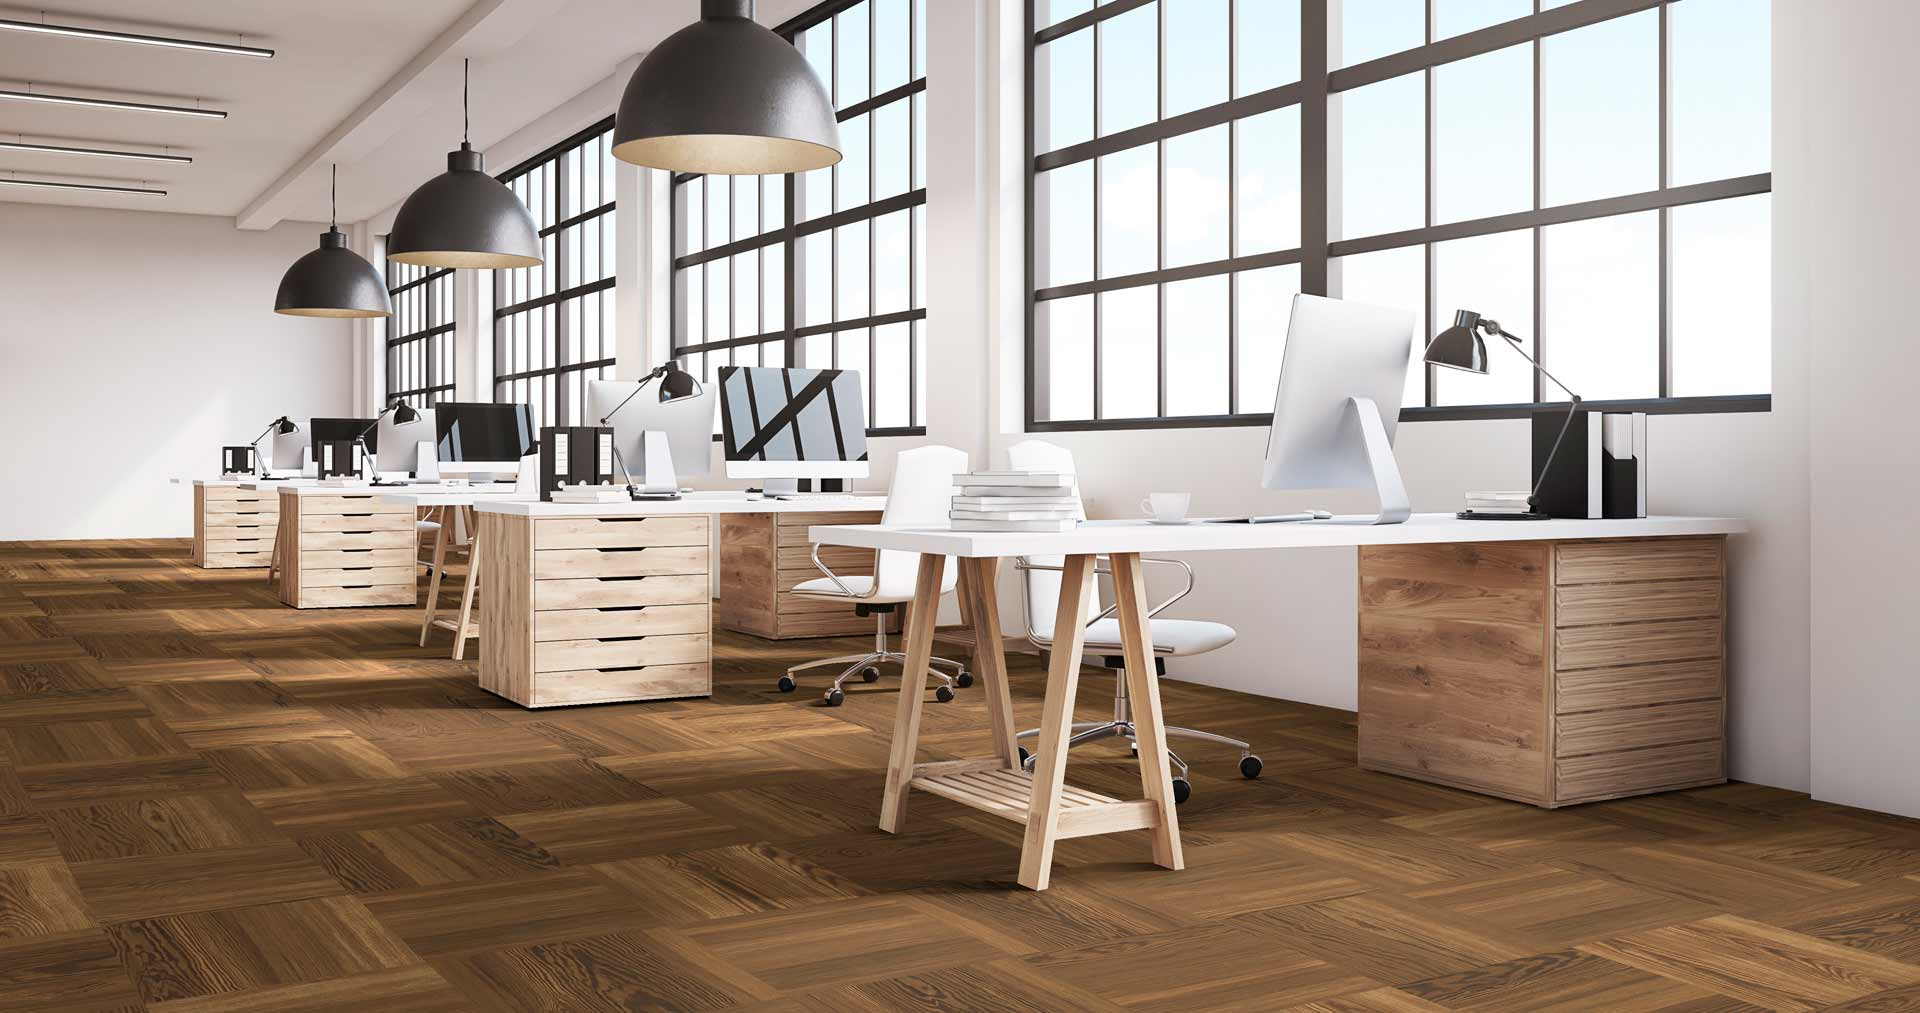 NBS_MTW_Heartwood_Espresso_Workplace.1920